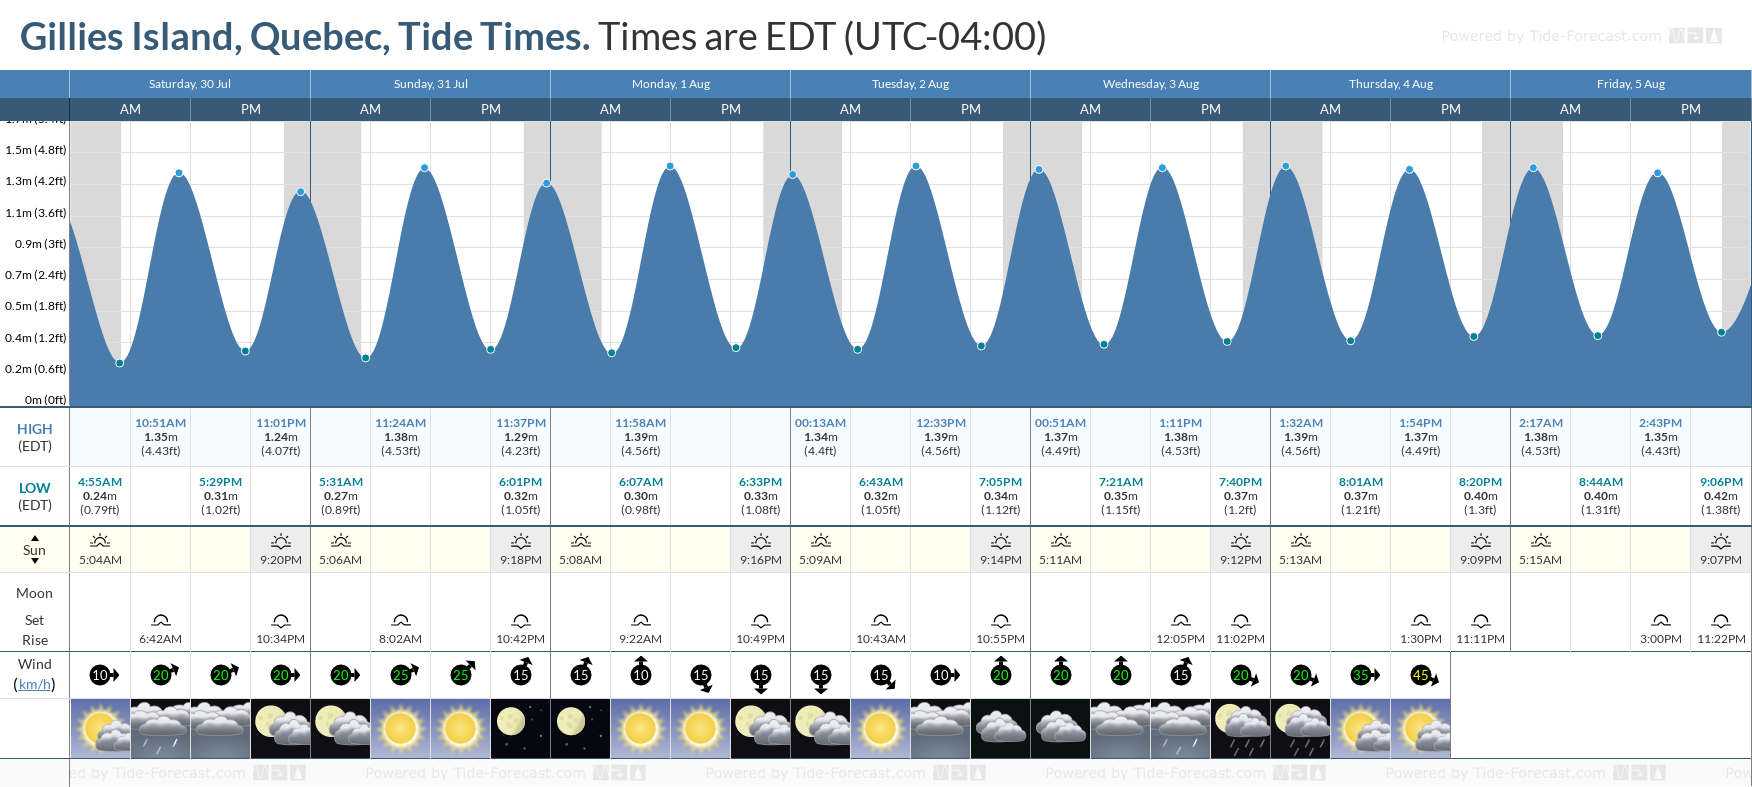 Gillies Island, Quebec Tide Chart including high and low tide tide times for the next 7 days